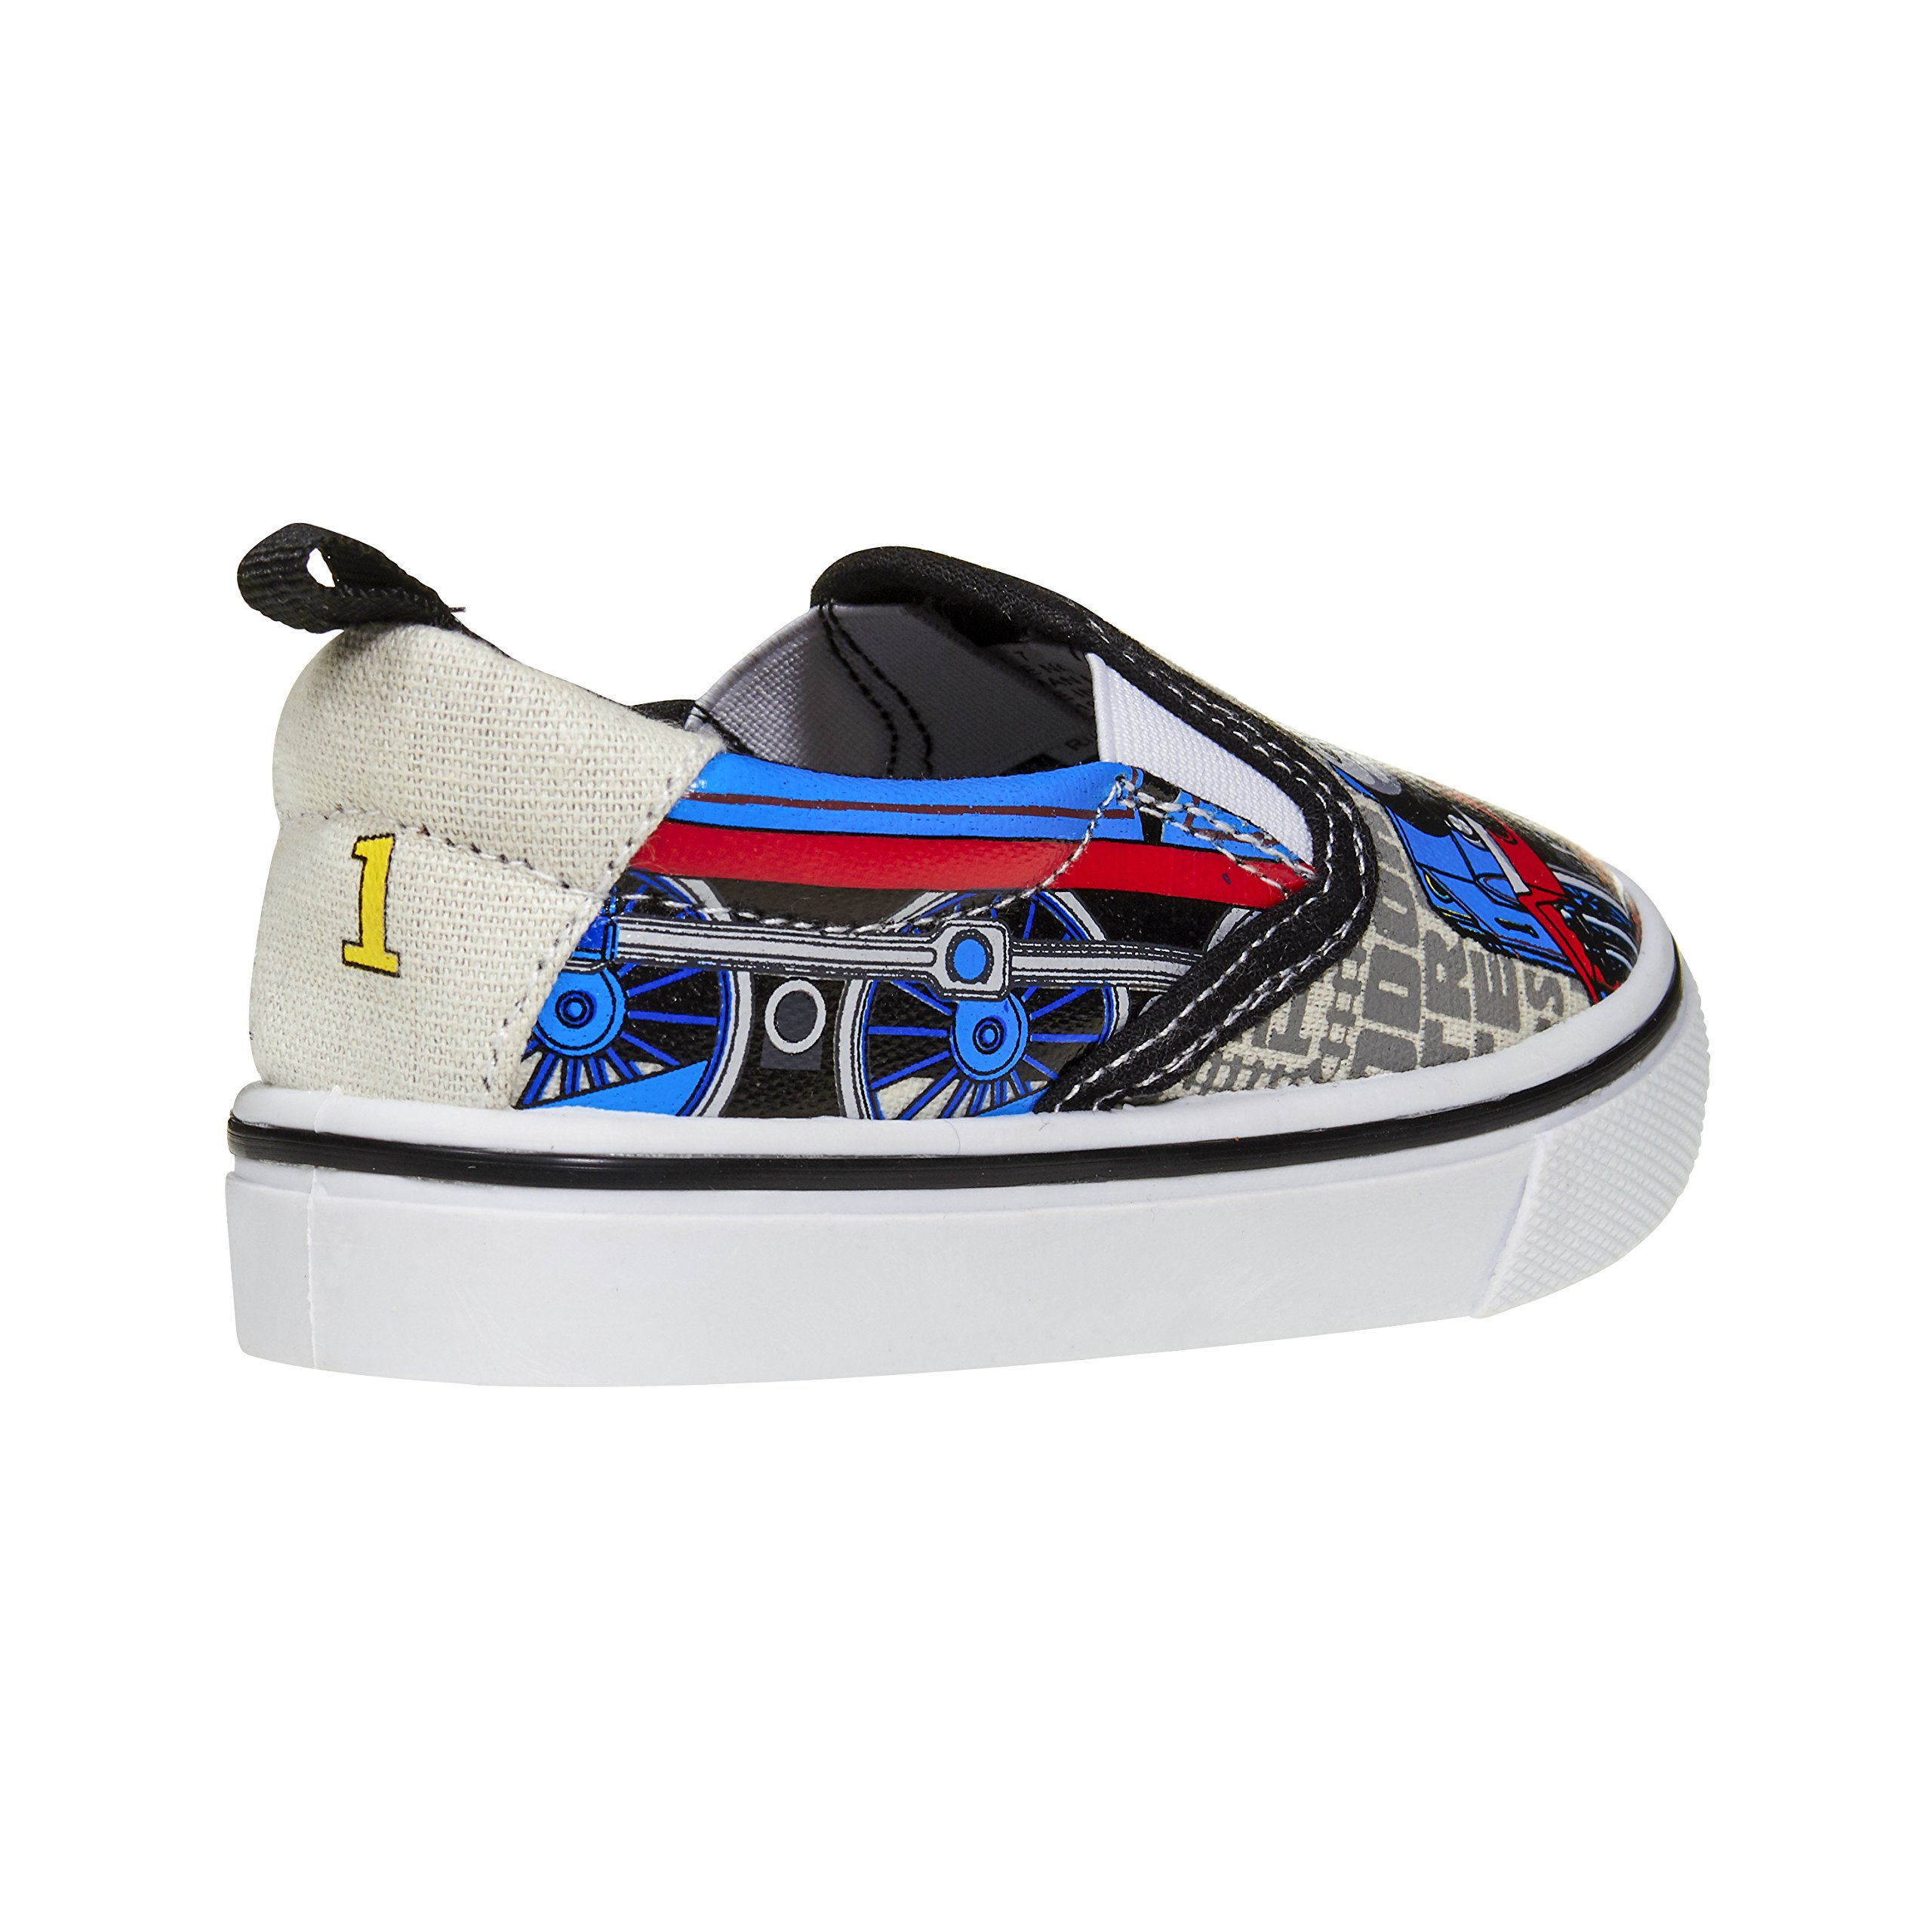 Thomas and Friends Toddler Boy Shoes; Slip-On Little Kids Character Shoes by Thomas & Friends (Image #4)